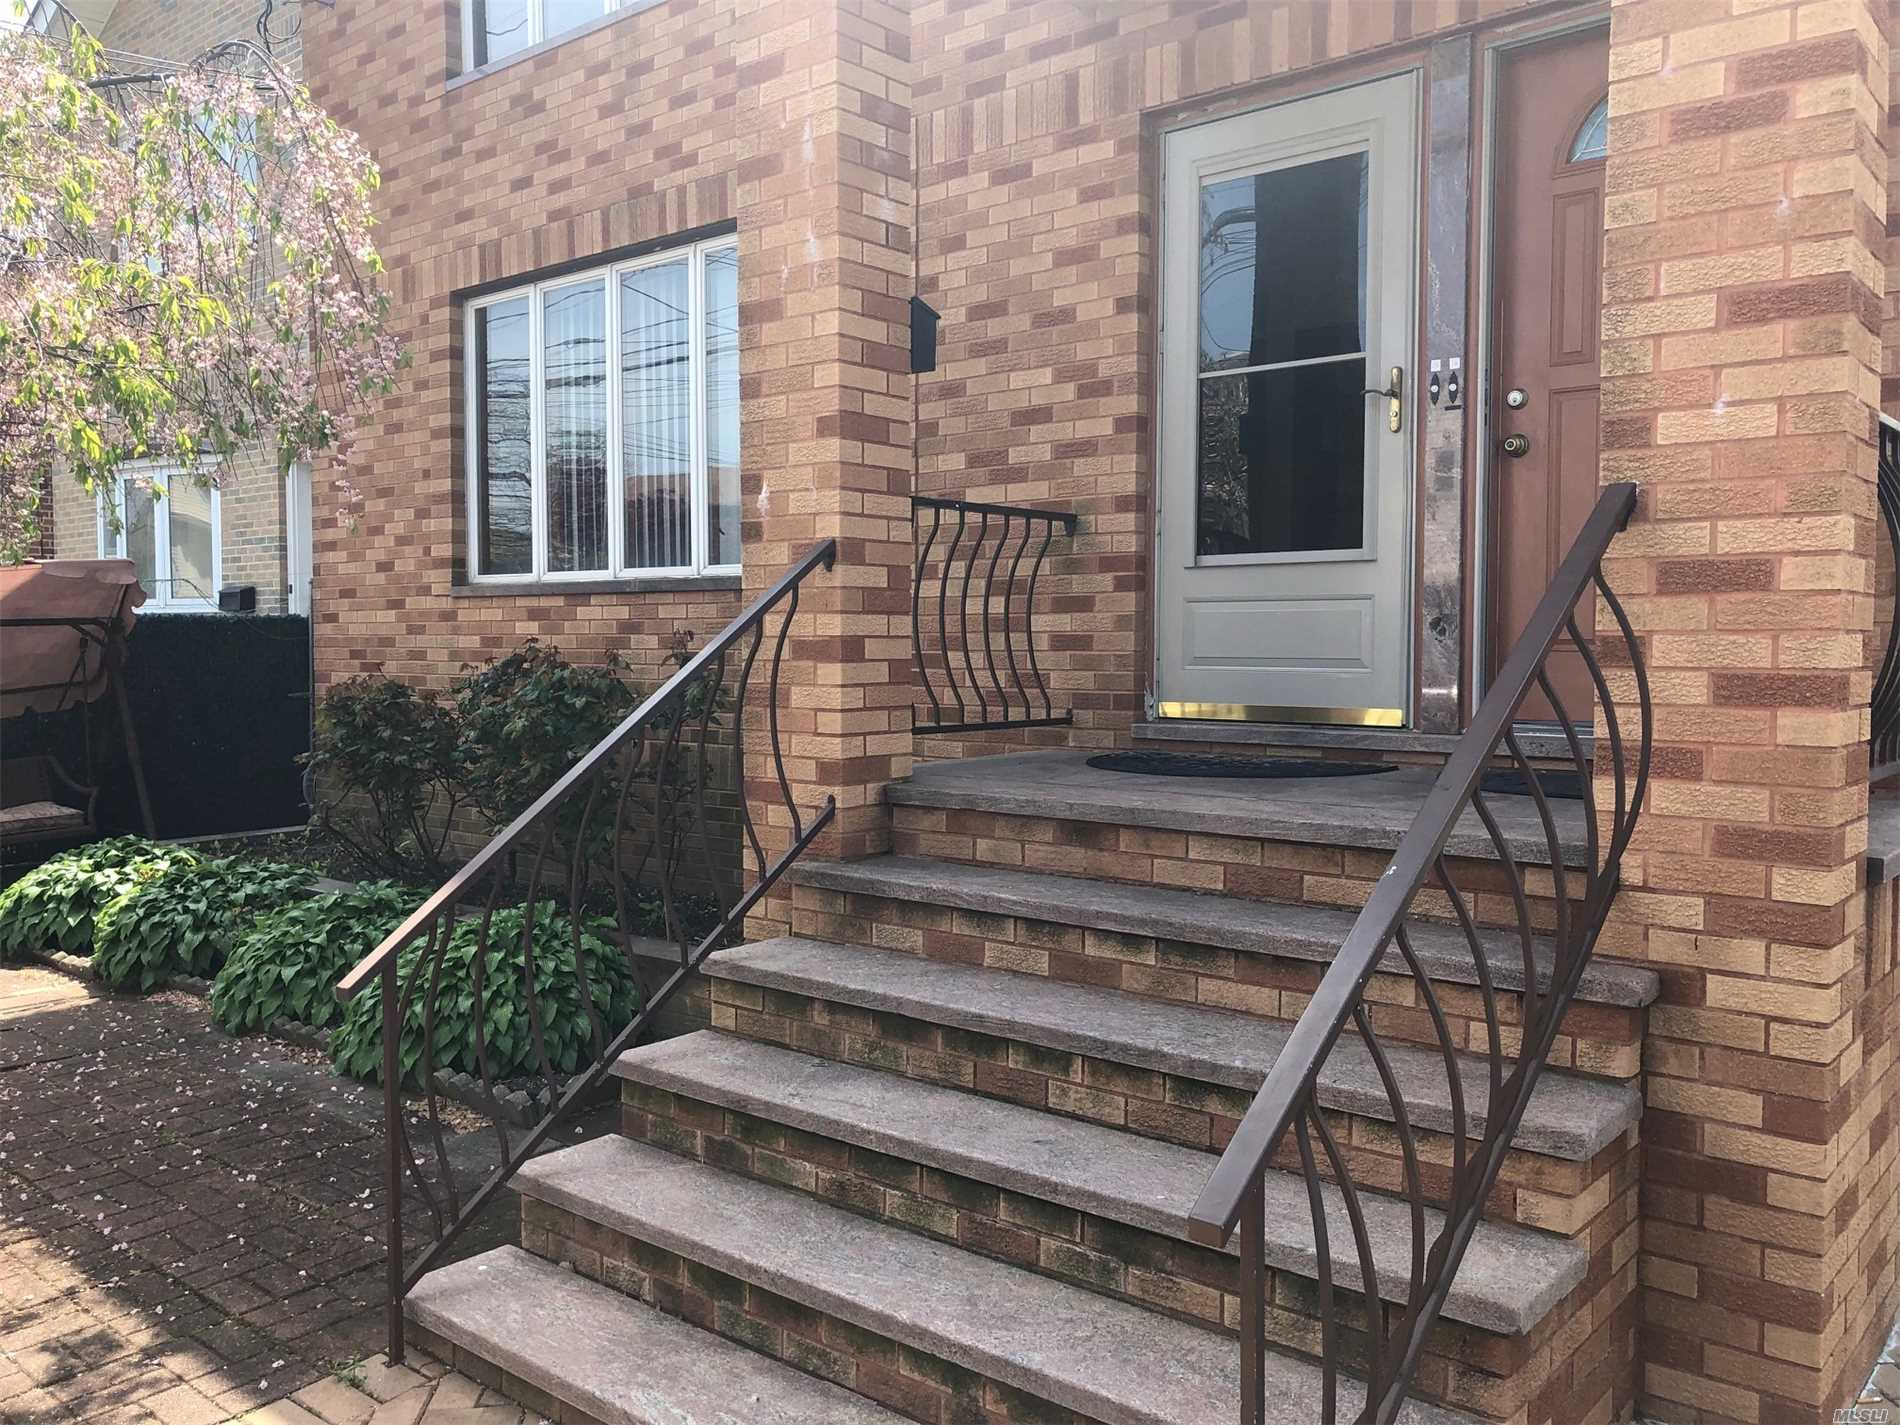 Huge over 1300 sq feet 3 Bedroom , 2 Full bath apartment, Eating kitchen with New Appliances , Large Living room dining room area , Huge closet space including walking closet on Master Bedroom , Heat & Hot Water Inc. Cenral A/C .First floor with small patio in the front .